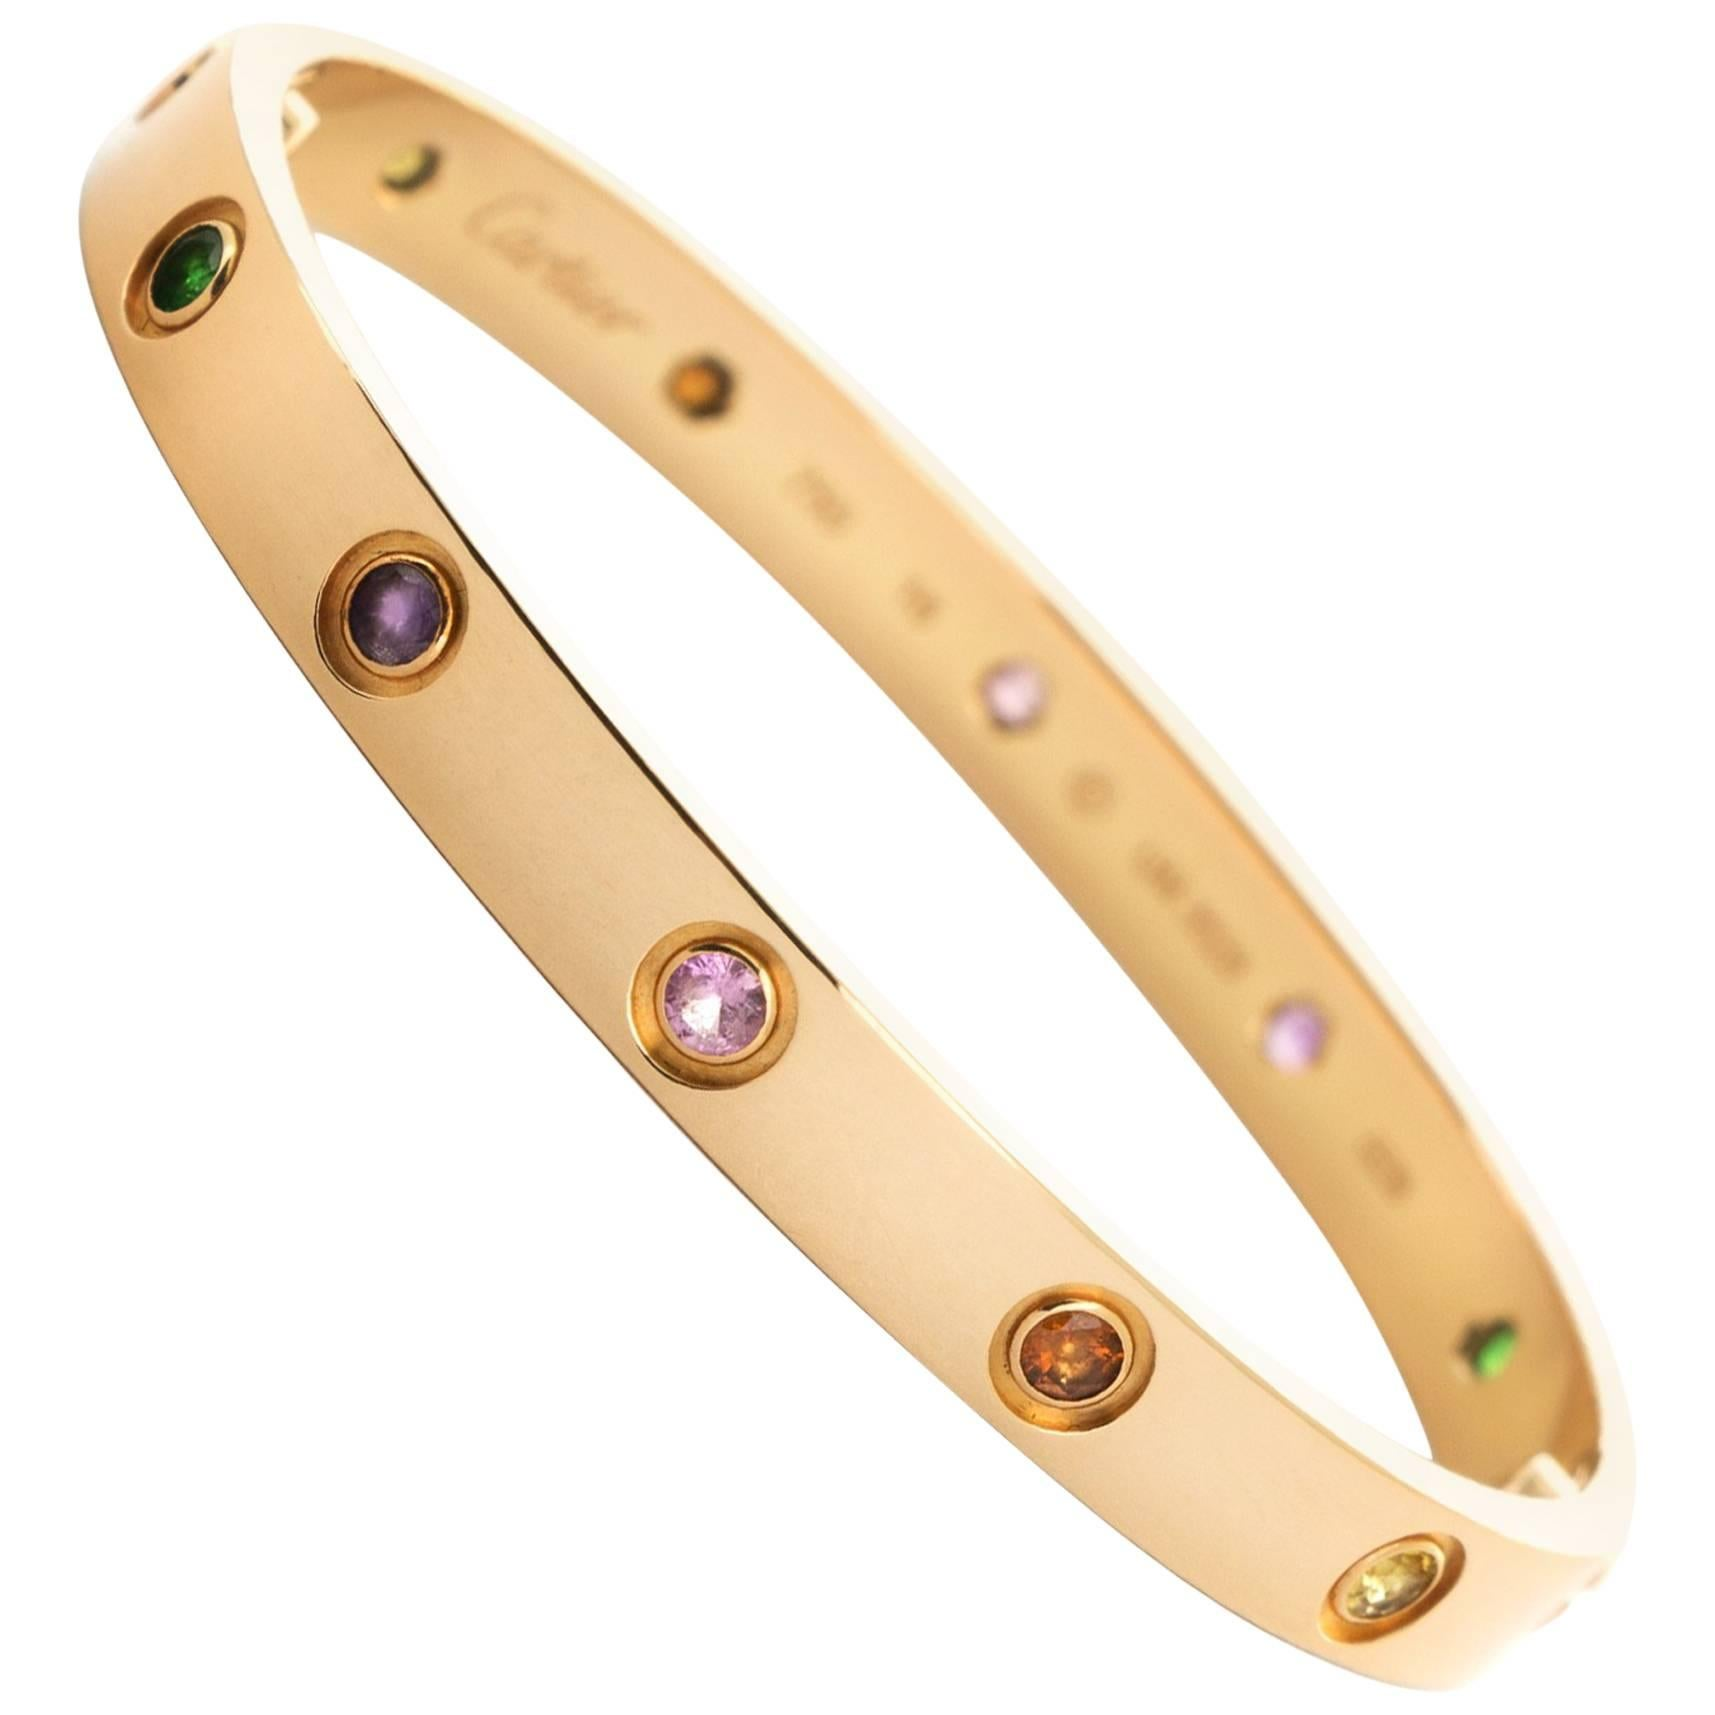 Cartier Rose Gold Love Bracelet Multi Color Rainbow Bangle Bracelet     Cartier Rose Gold Love Bracelet Multi Color Rainbow Bangle Bracelet For Sale